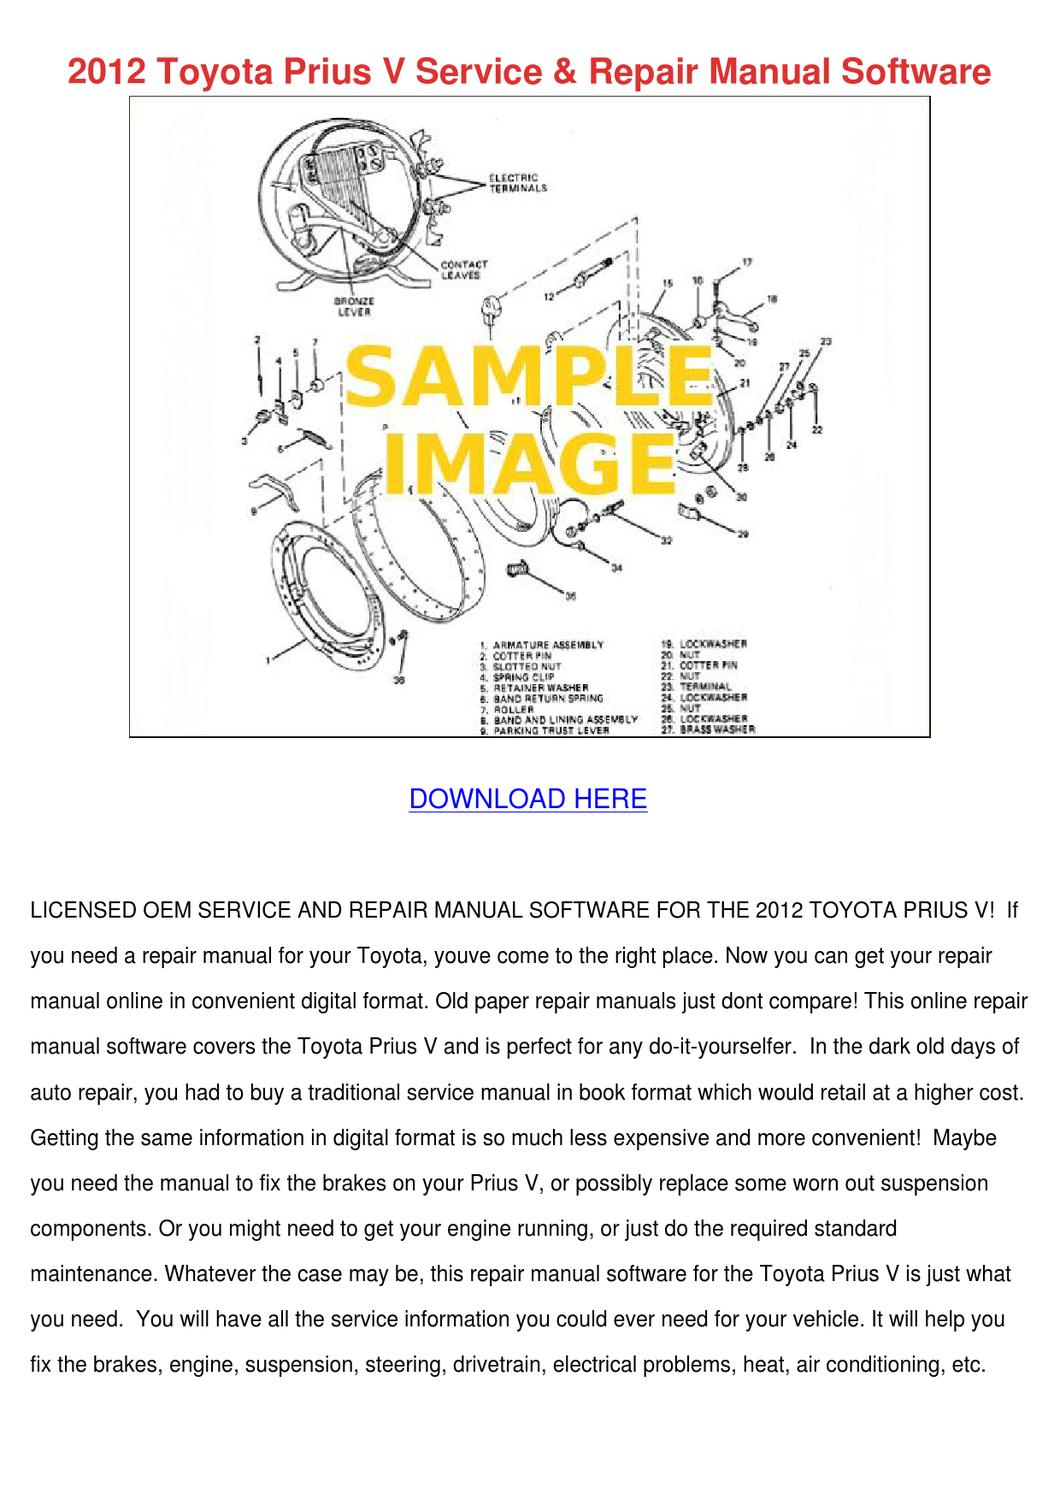 2012 Toyota Prius V Service Repair Manual Sof by AngeliaYount - issuu